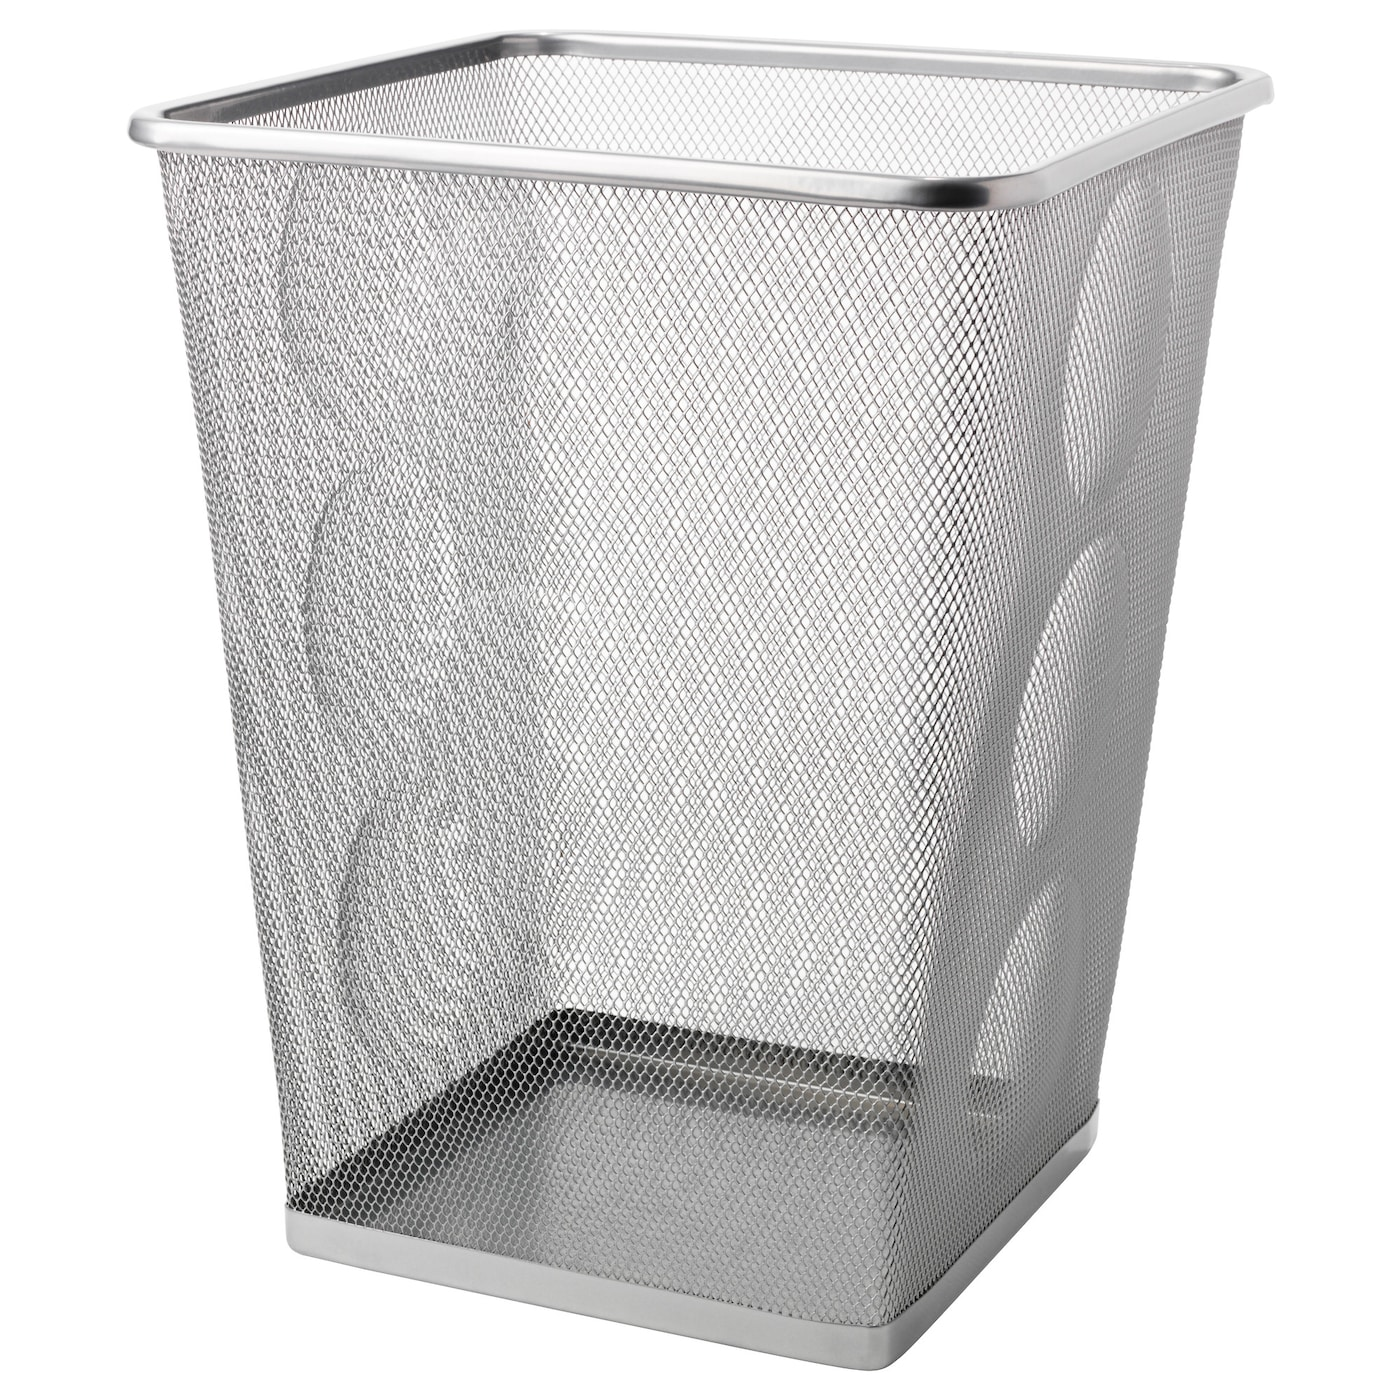 Wastepaper Basket Alluring Dokument Wastepaper Basket Silvercolour  Ikea Decorating Inspiration